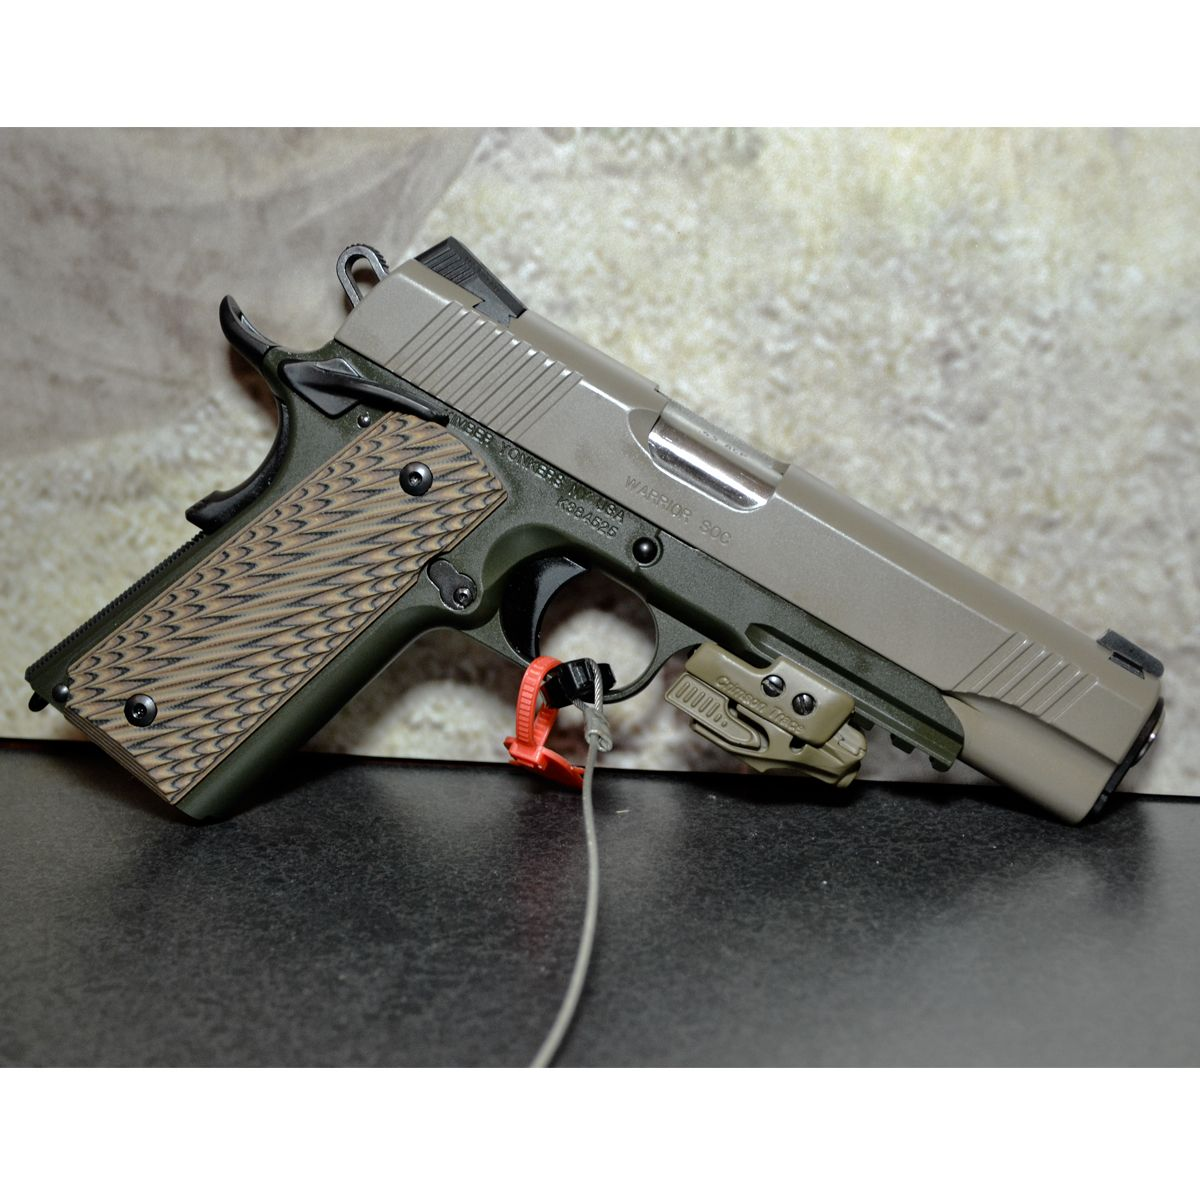 Kimber Warrior SOC  45ACP Pistol w/ Laser - 7rd - available for pre